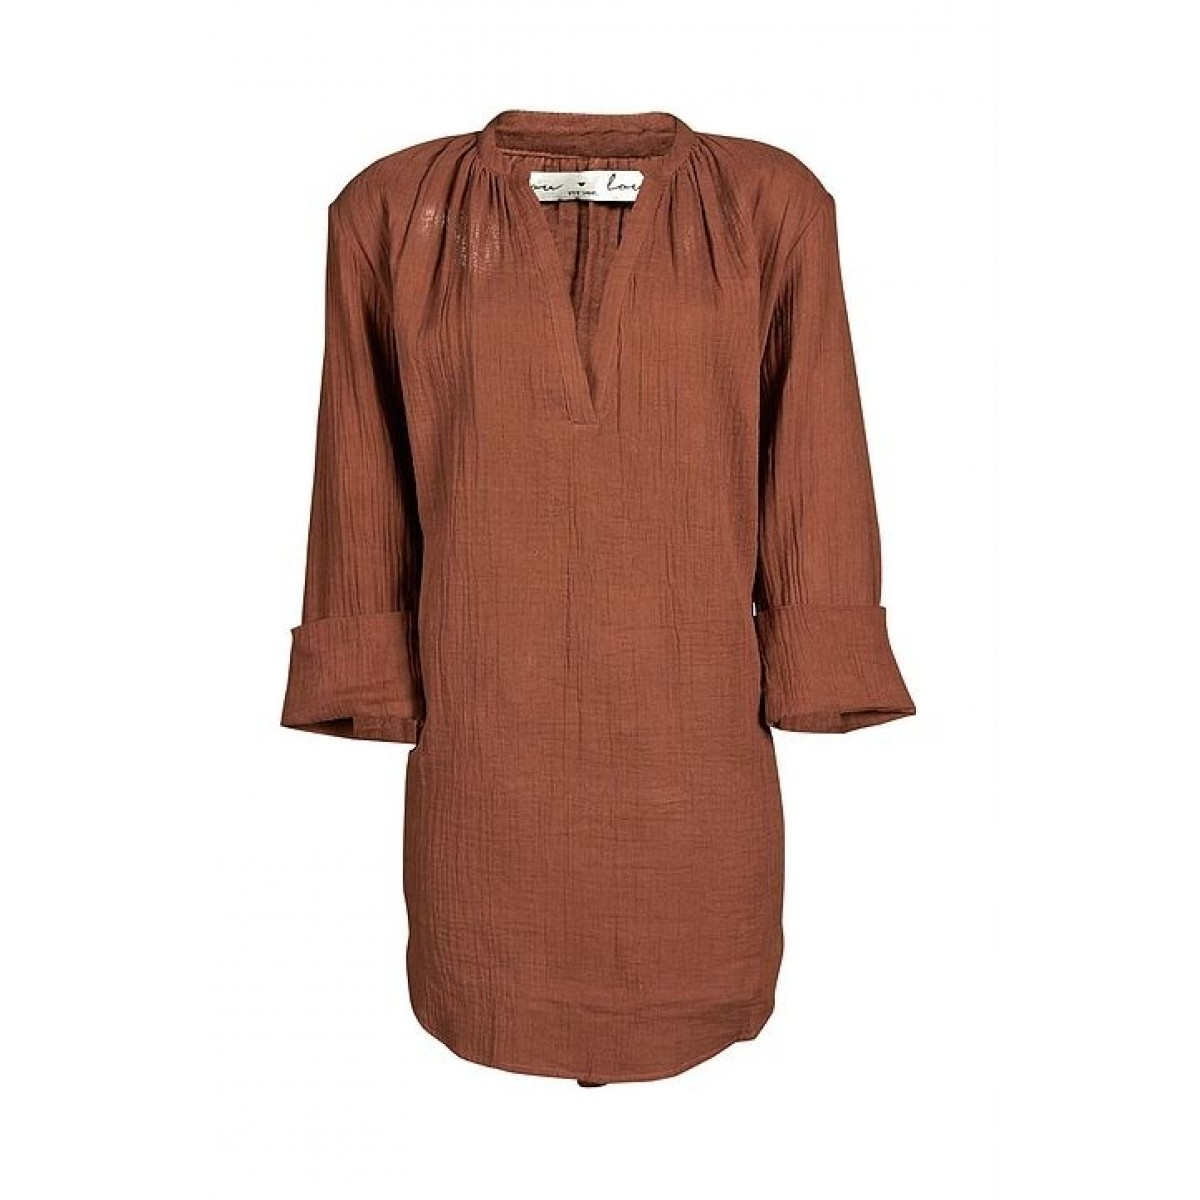 Lou Lou 190109 Beauty Dress Burnt Orange-31